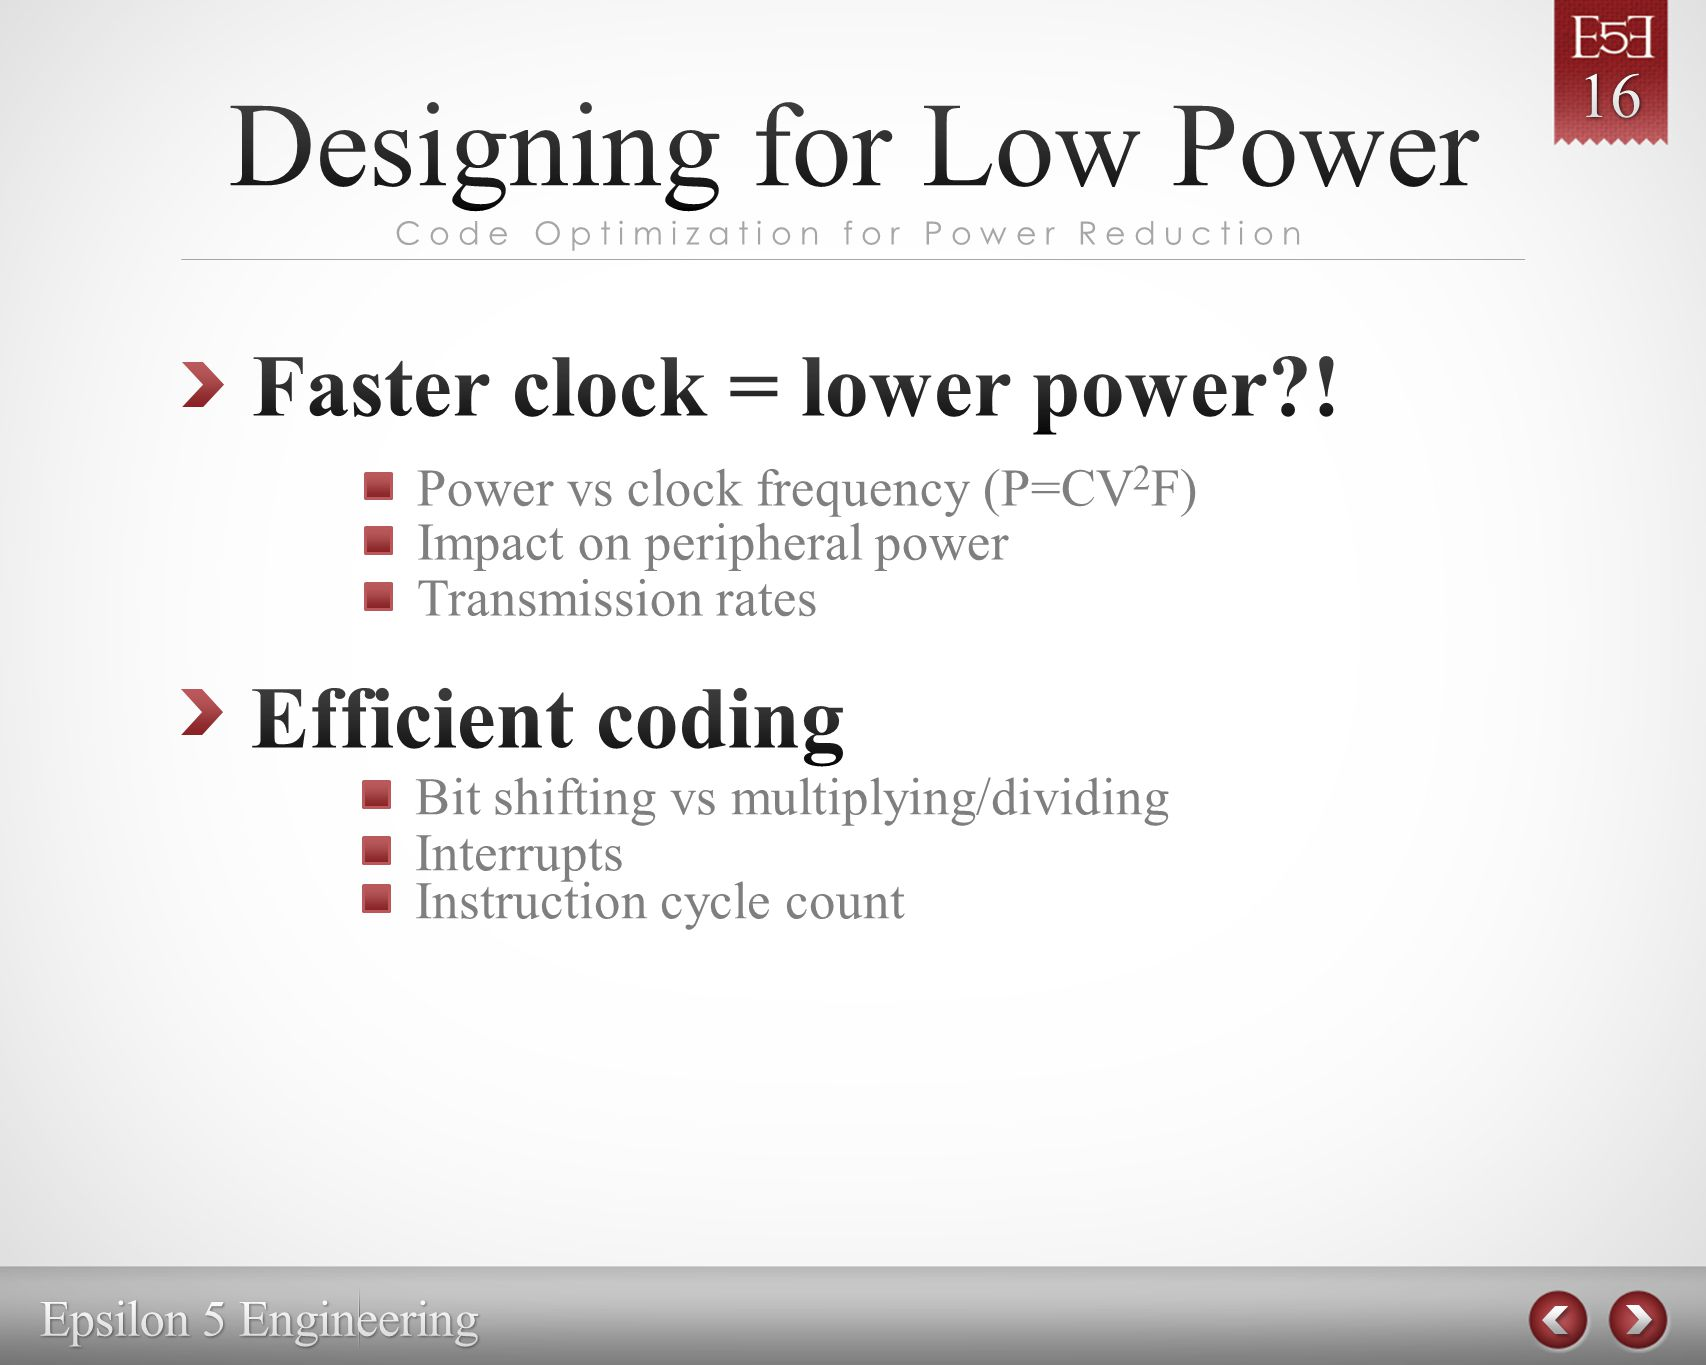 Code Optimization for Power Reduction Bit shifting vs multiplying/dividing Power vs clock frequency (P=CV 2 F) Impact on peripheral power Interrupts Instruction cycle count Transmission rates